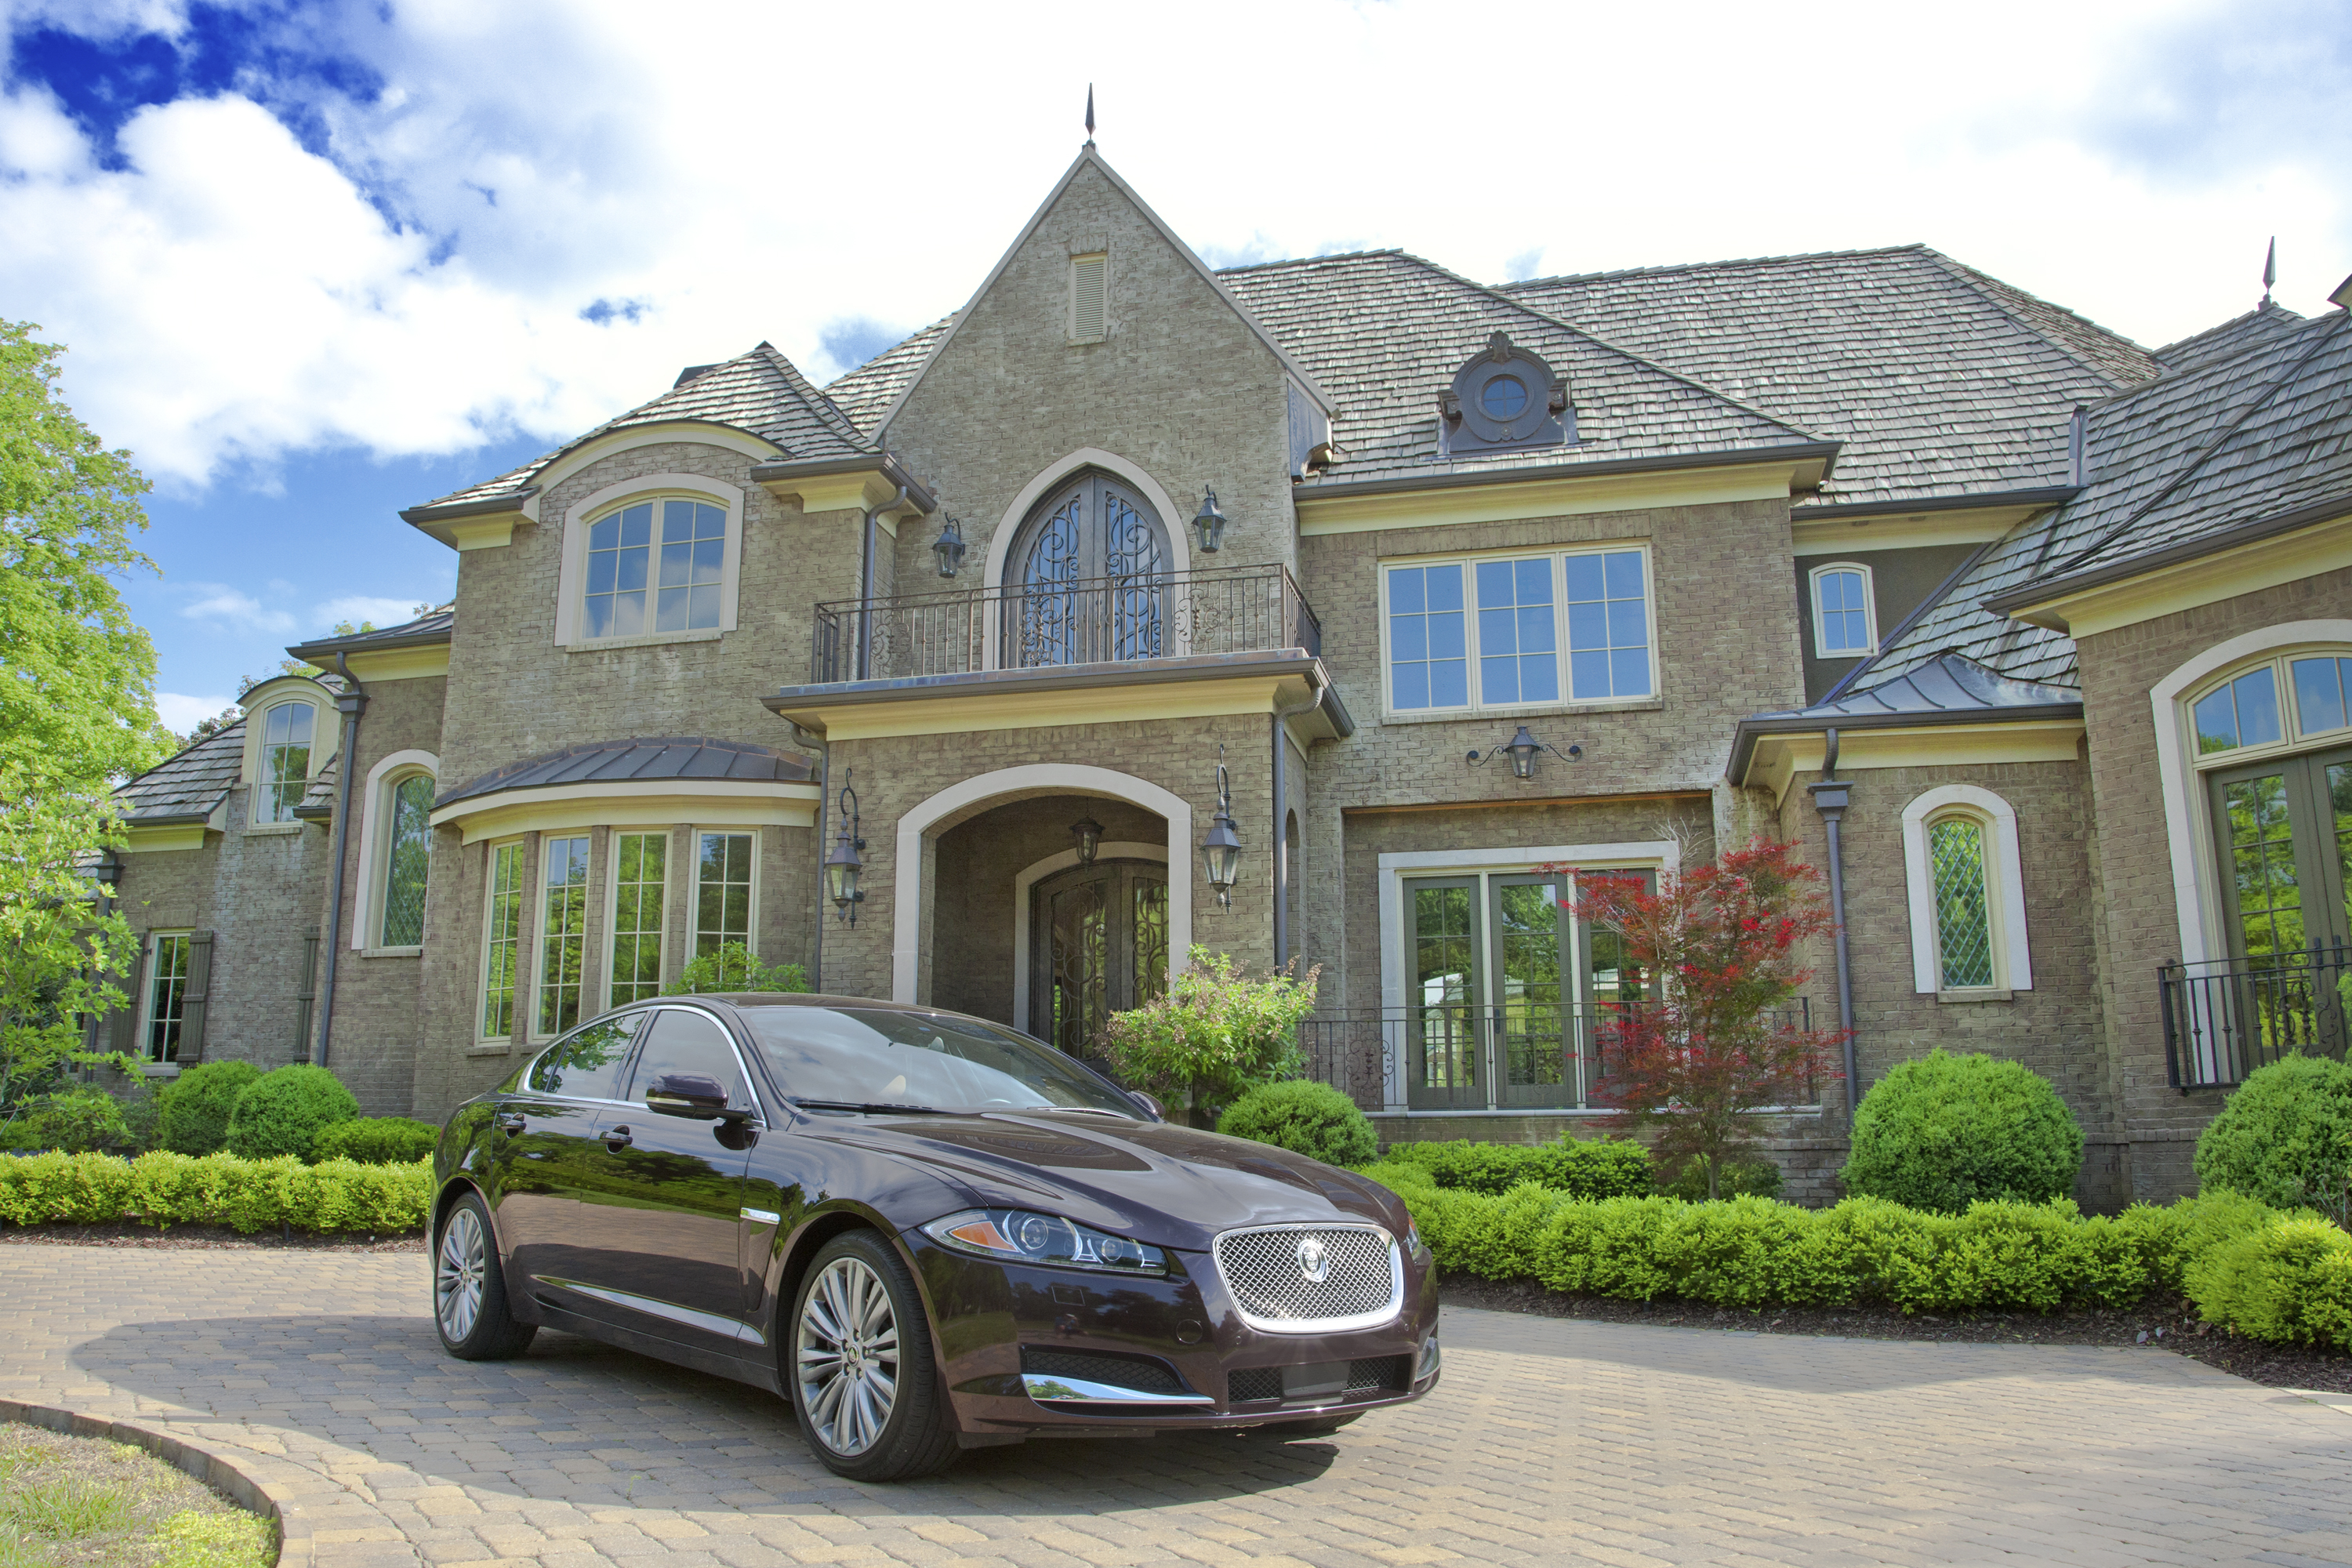 Manor-Home-Exterior-with-Jag.jpg